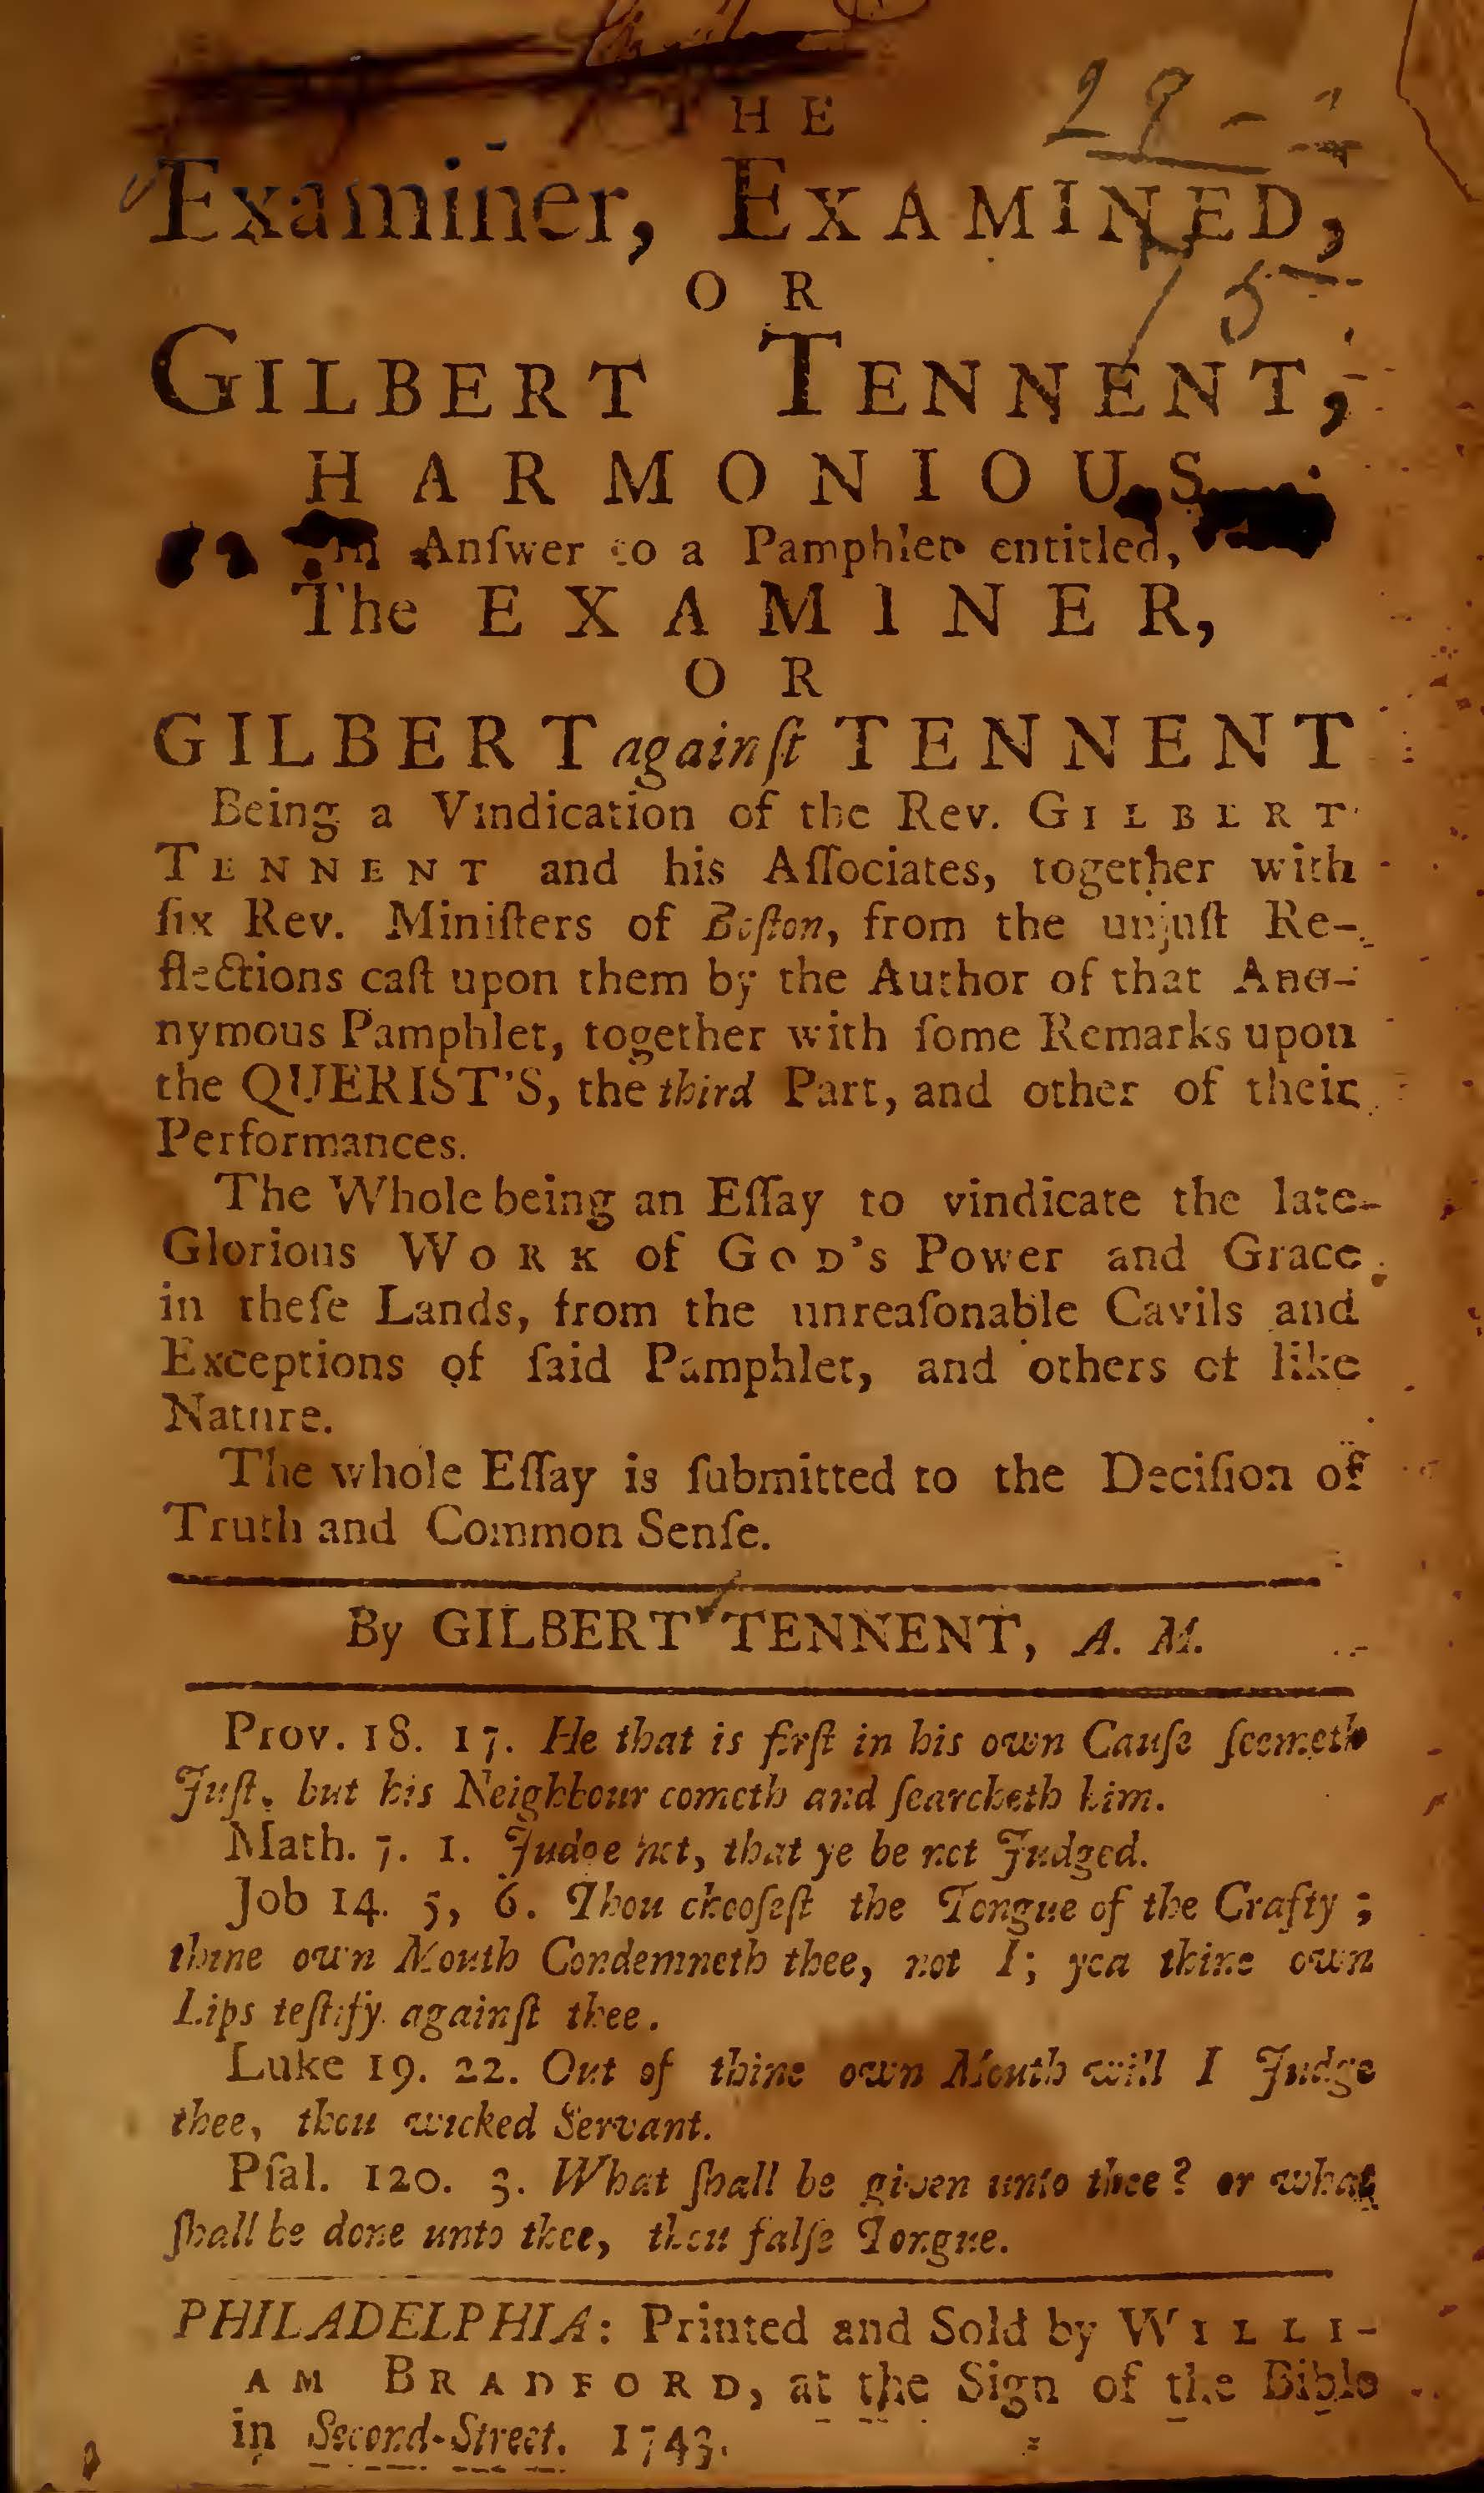 Tennent, Gilbert, The Examiner Examined Title Page.jpg